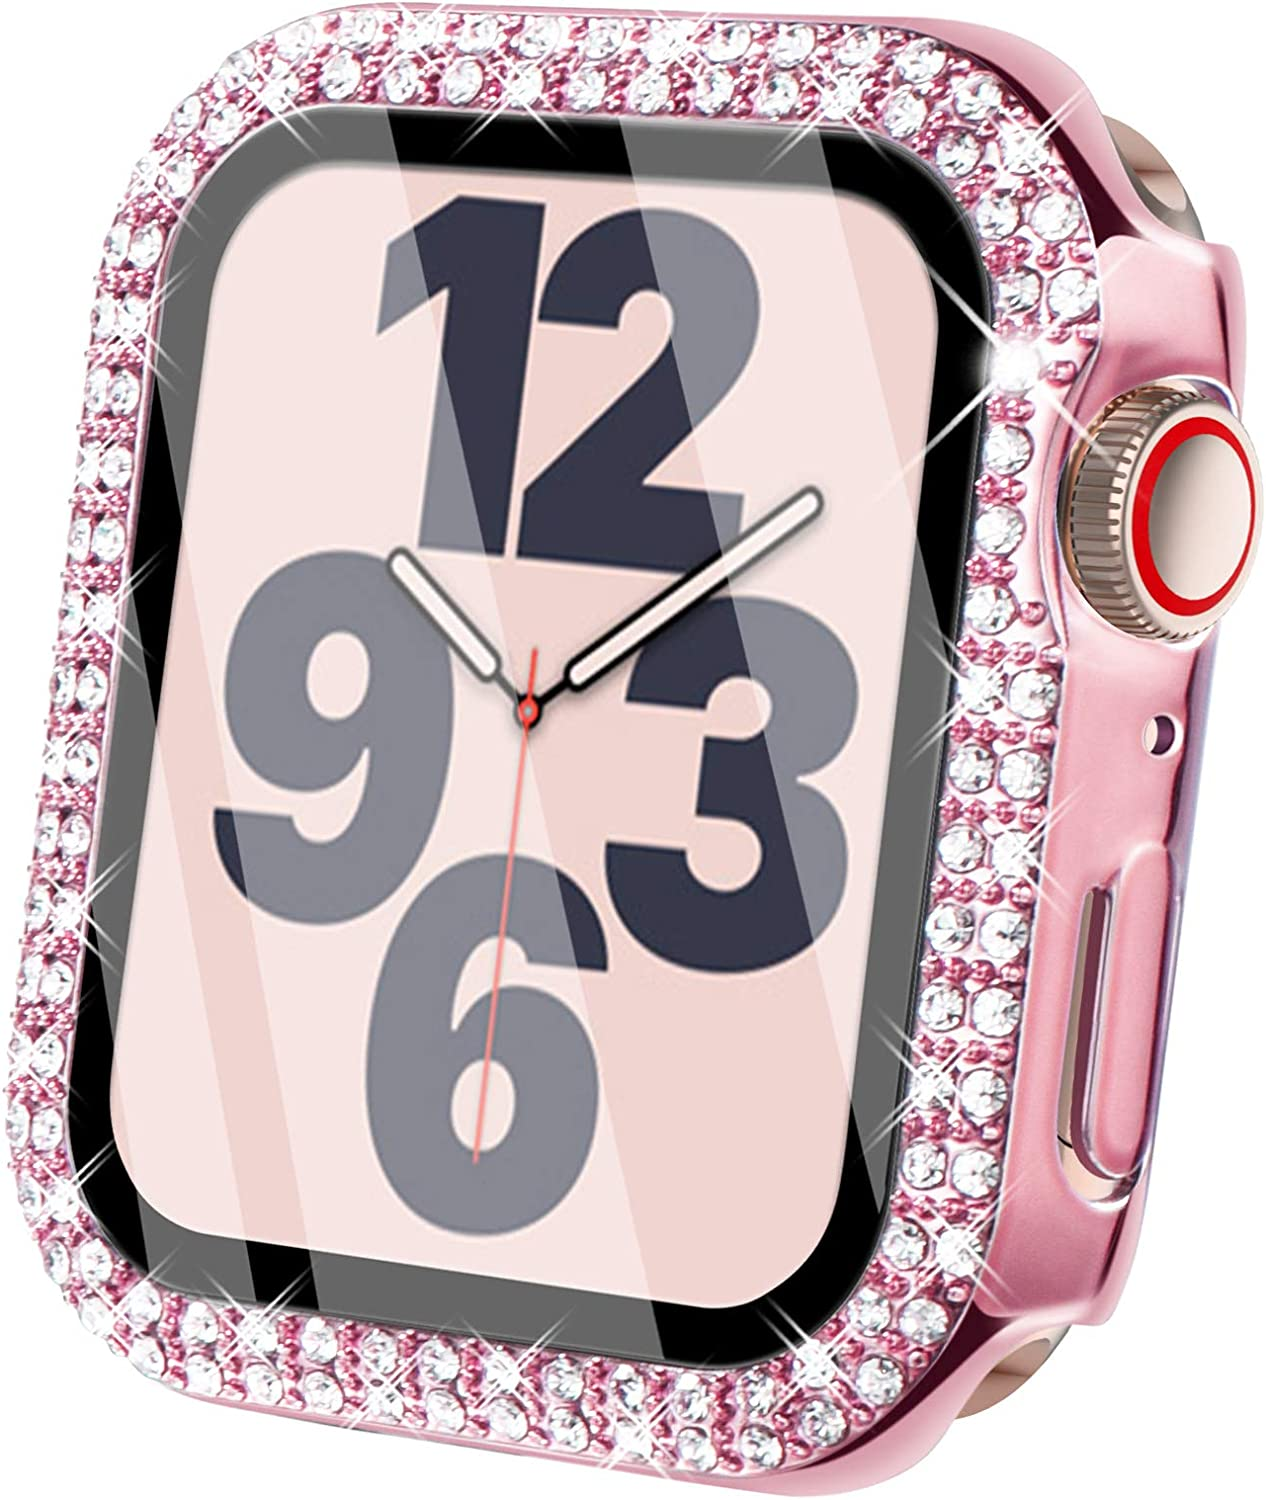 Surace Compatible for Apple Watch Case with Screen Protector 38mm, Bling Crystal Tempered Glass Overall Protective Case Compatible with Apple Watch Series 6/5/4/3/2/1 38mm 40mm 42mm 44mm, Pink